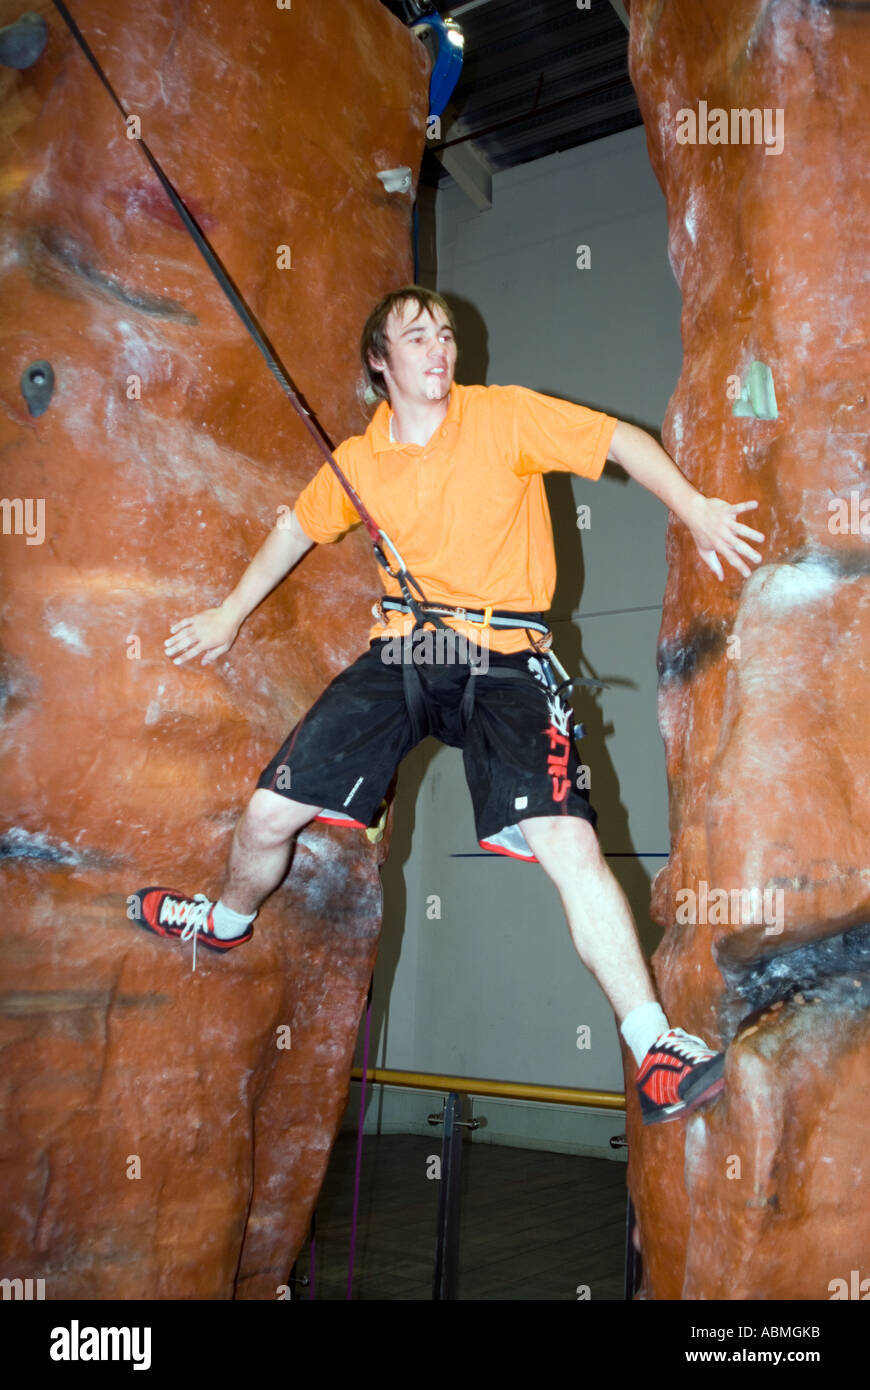 rock climbing in central Milton Keynes - Stock Image